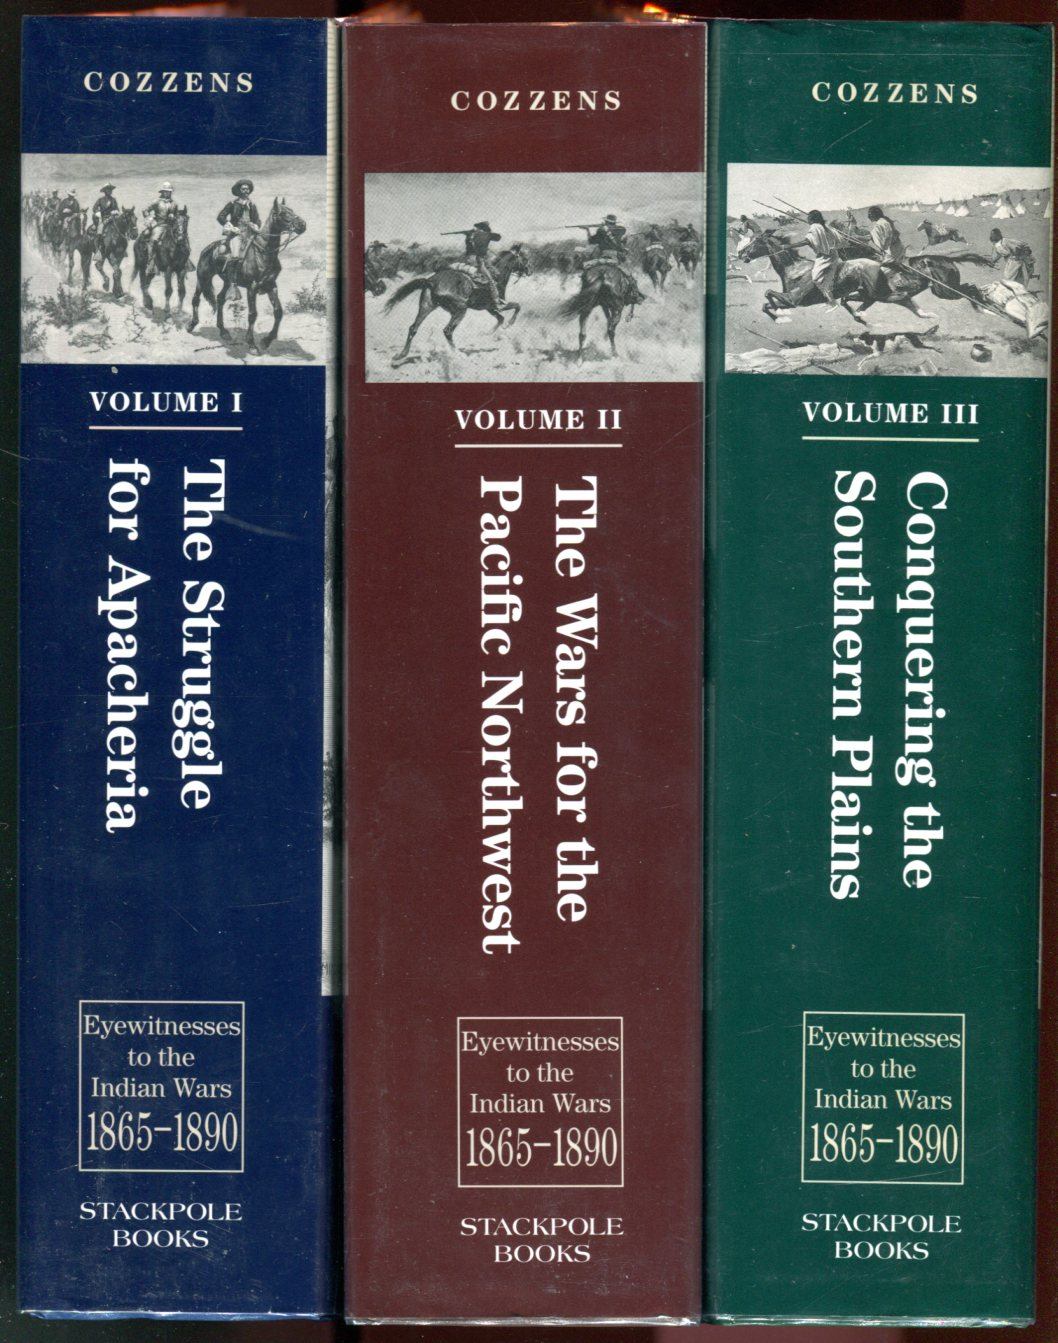 Image for Eyewitnesses to the Indian Wars 1865-1890 (3 volume set) v.1 The Struggle for Apacheria, v.2 The Wars for the Pacific Northwest, v.3 Conquering the Southern Plains